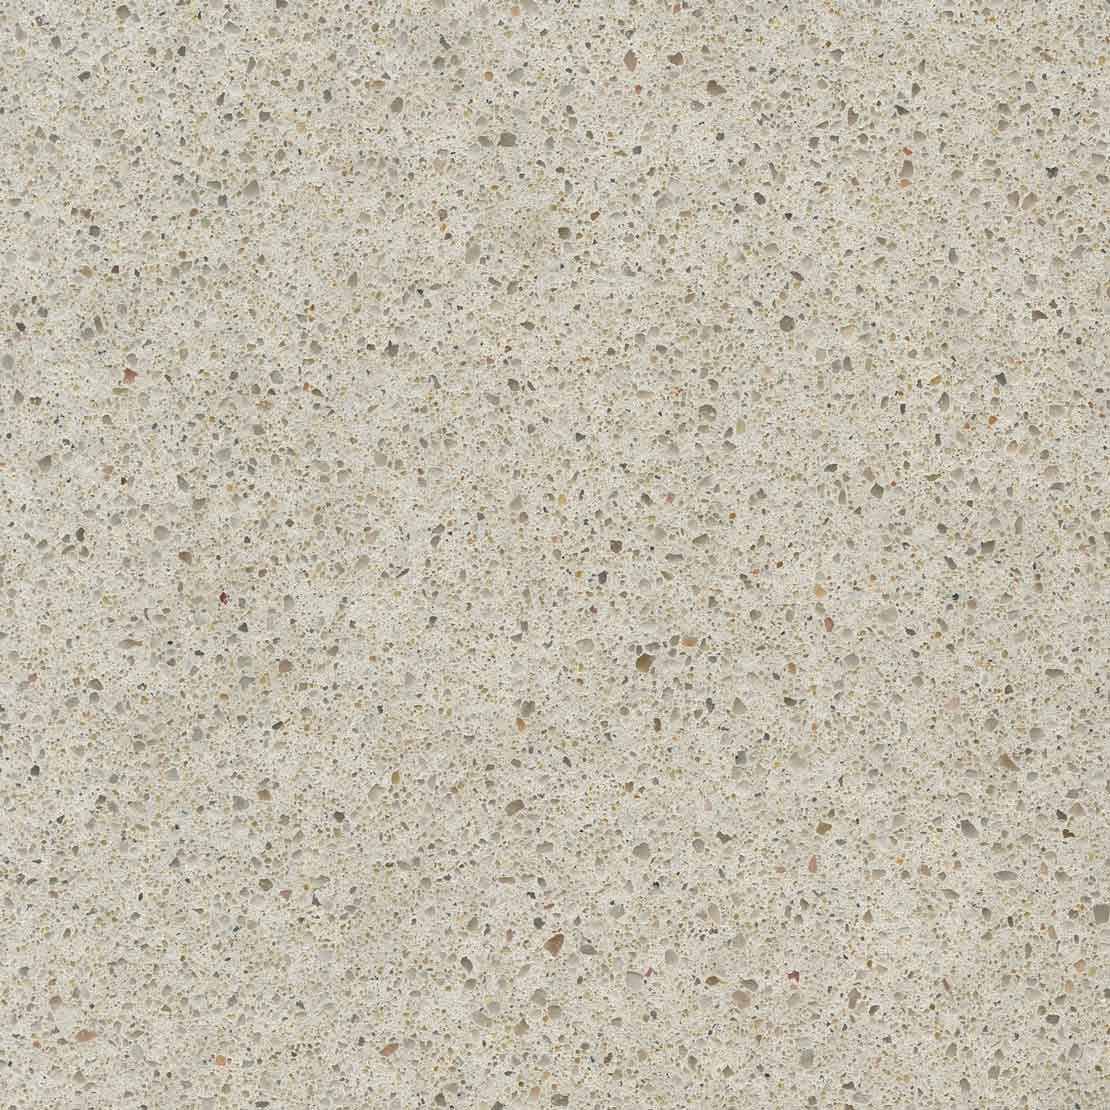 Blad Silestone Blanco City